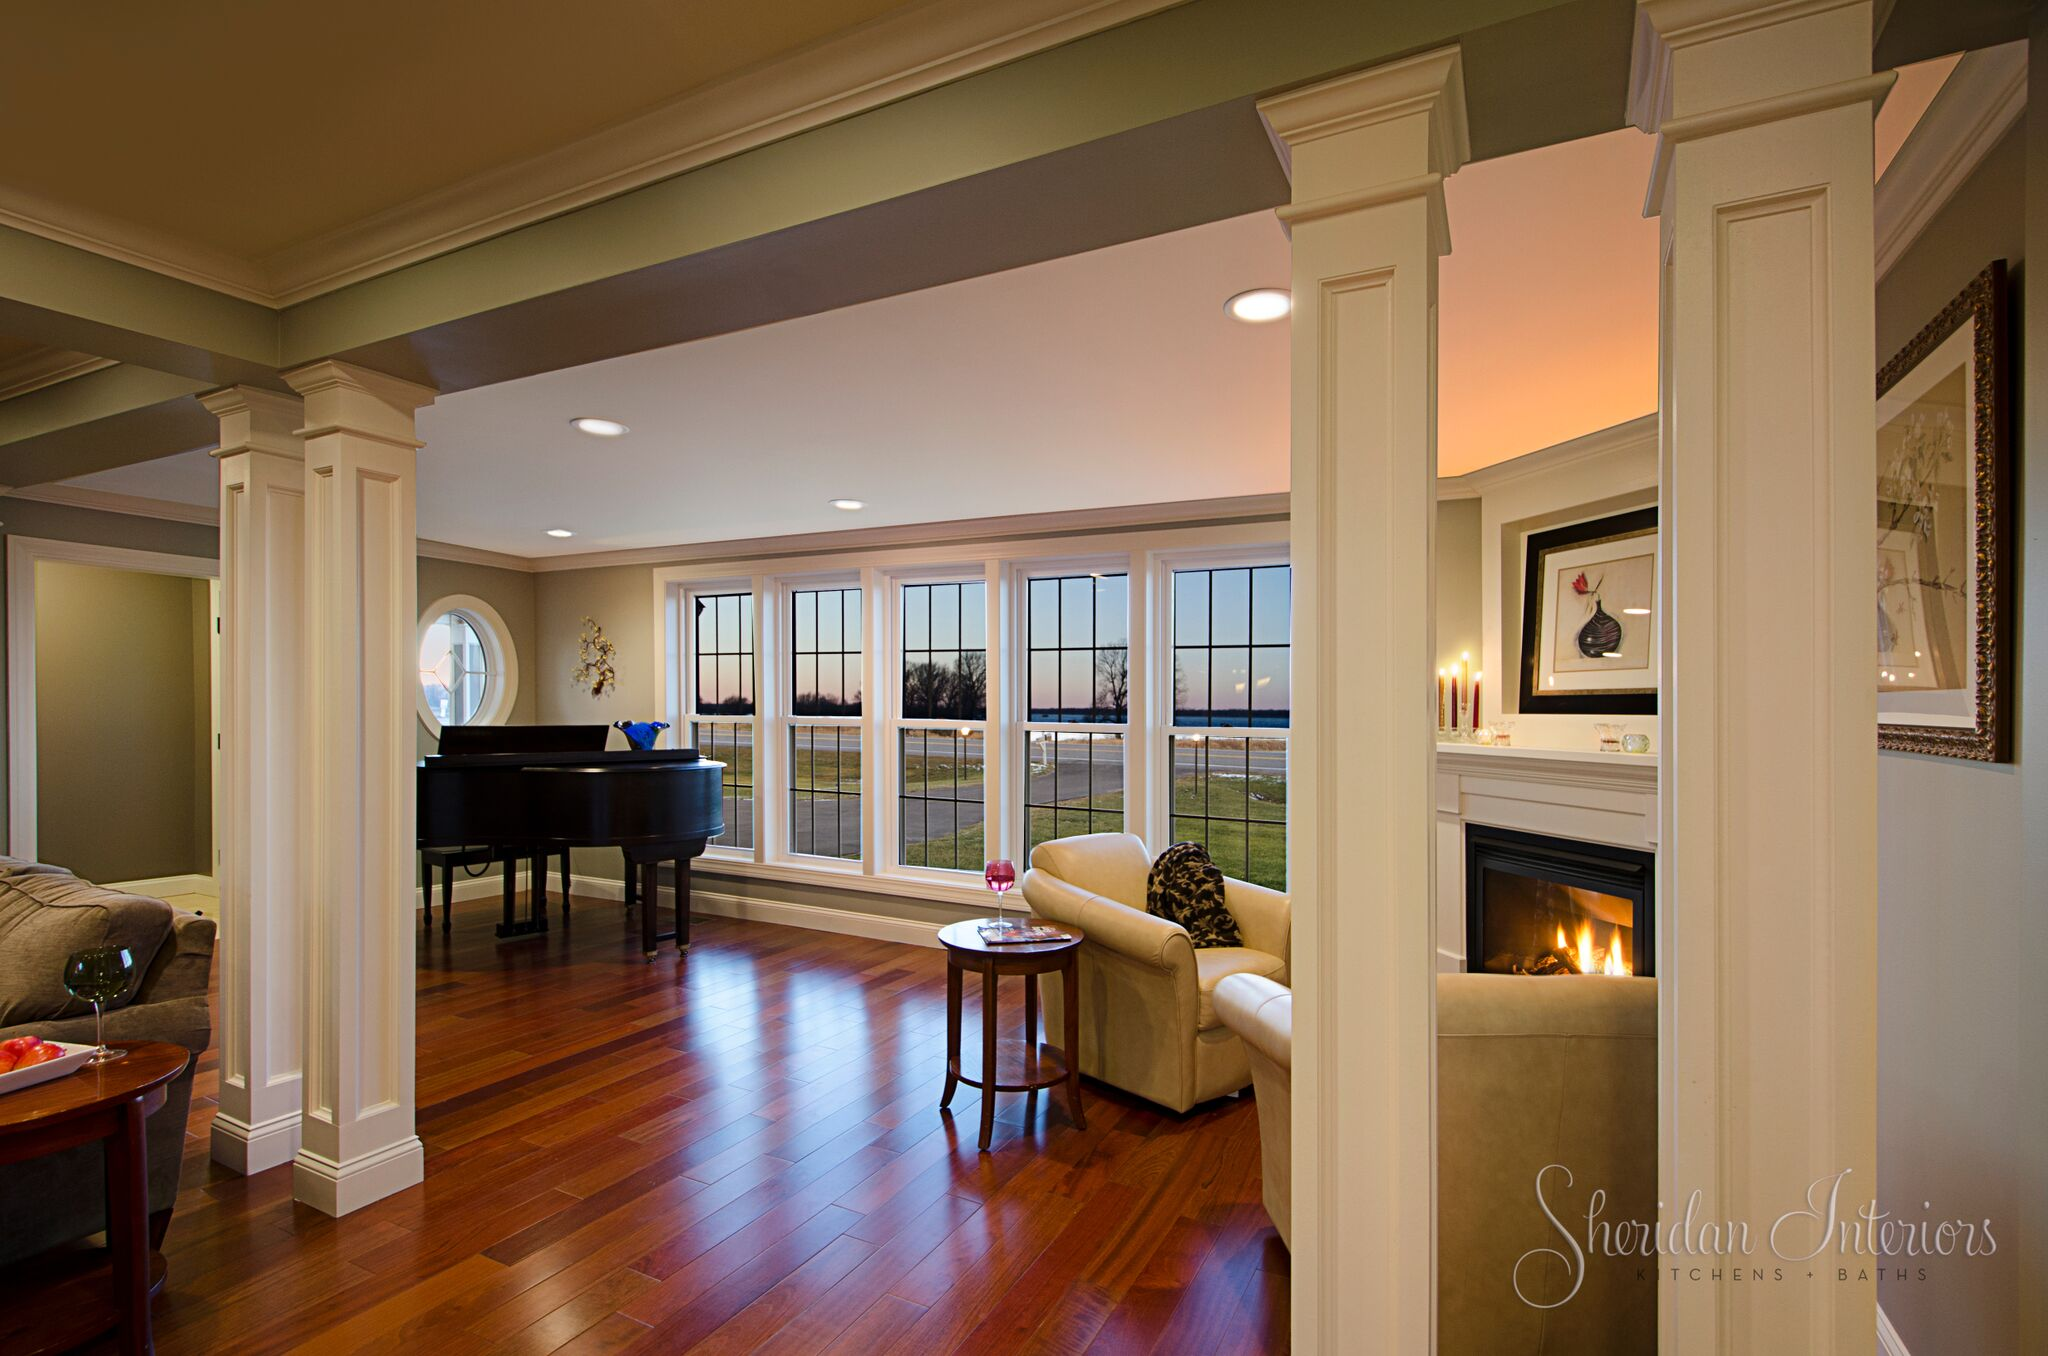 Traditional Sitting Room with Corner Gas Fireplace and Painted Mantle - Sheridan Interiors